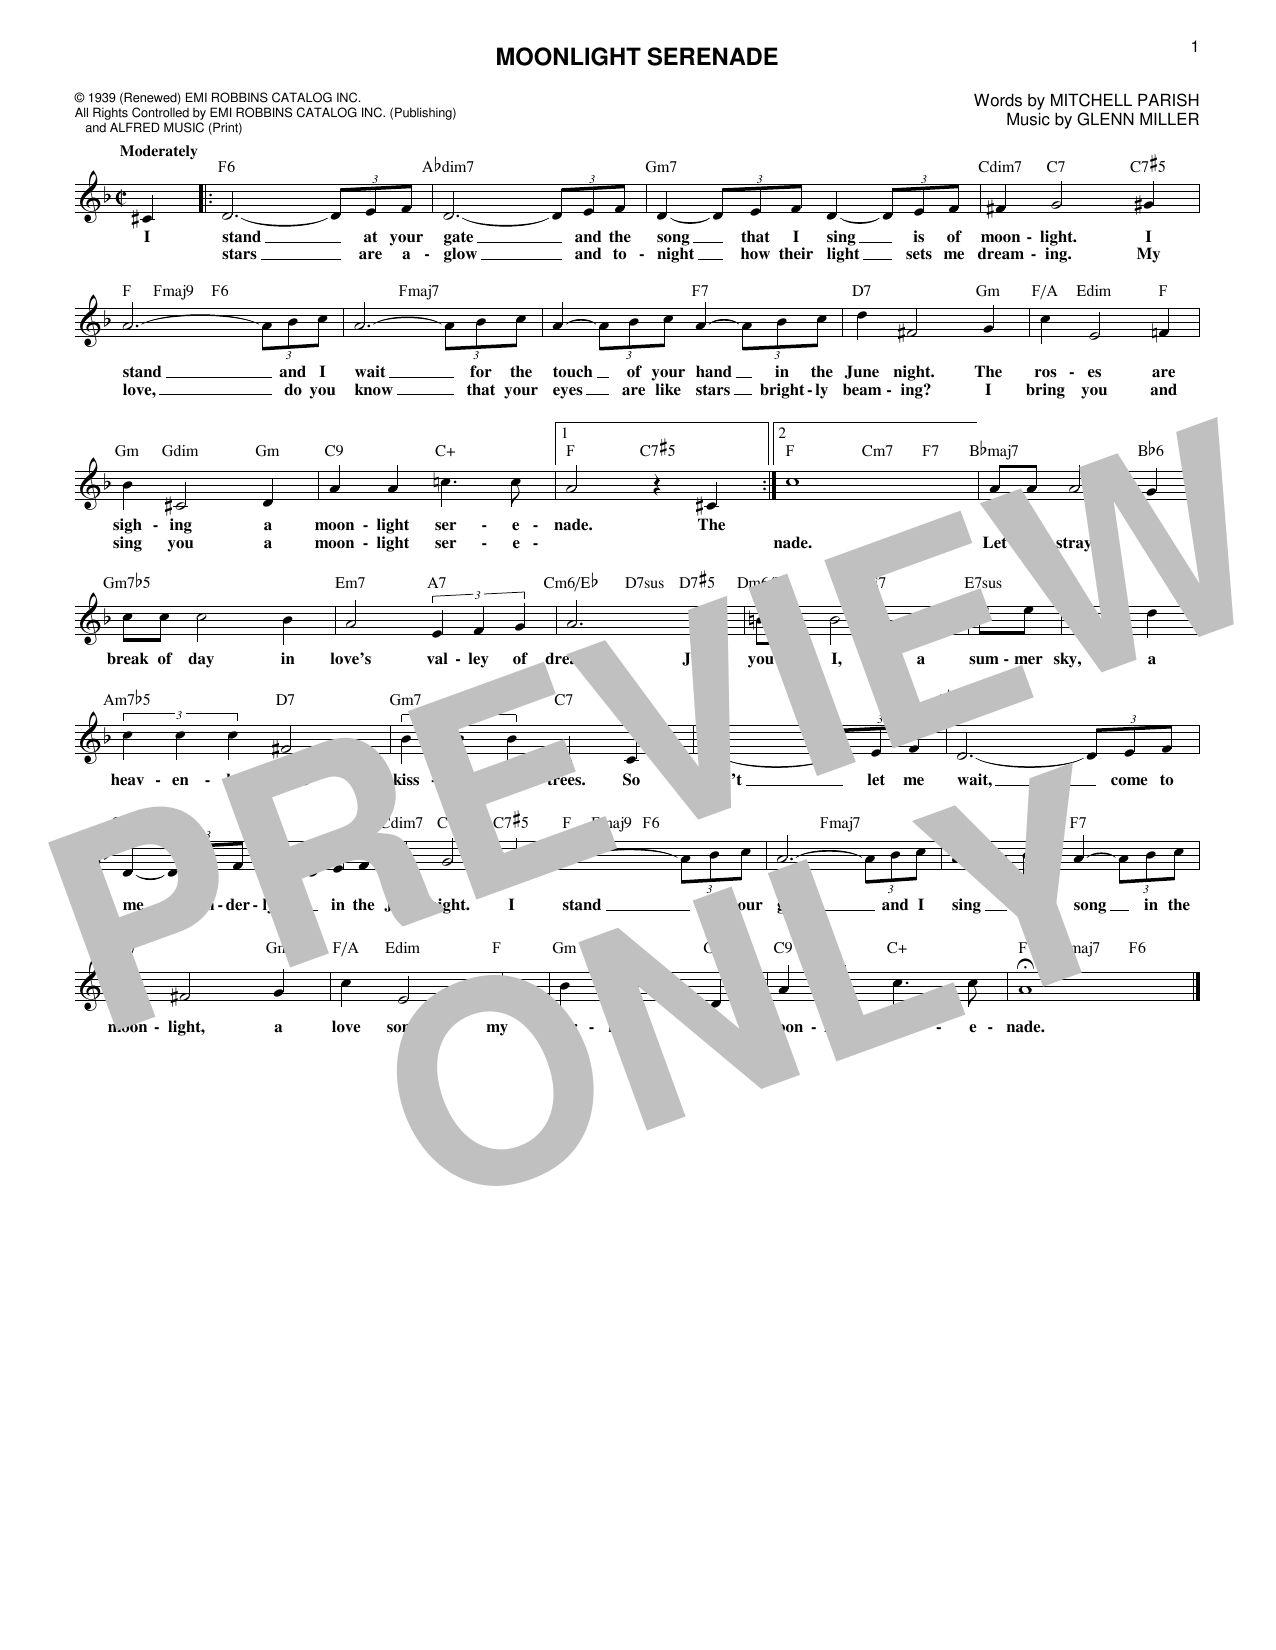 Glen Miller Moonlight Serenade sheet music notes and chords. Download Printable PDF.